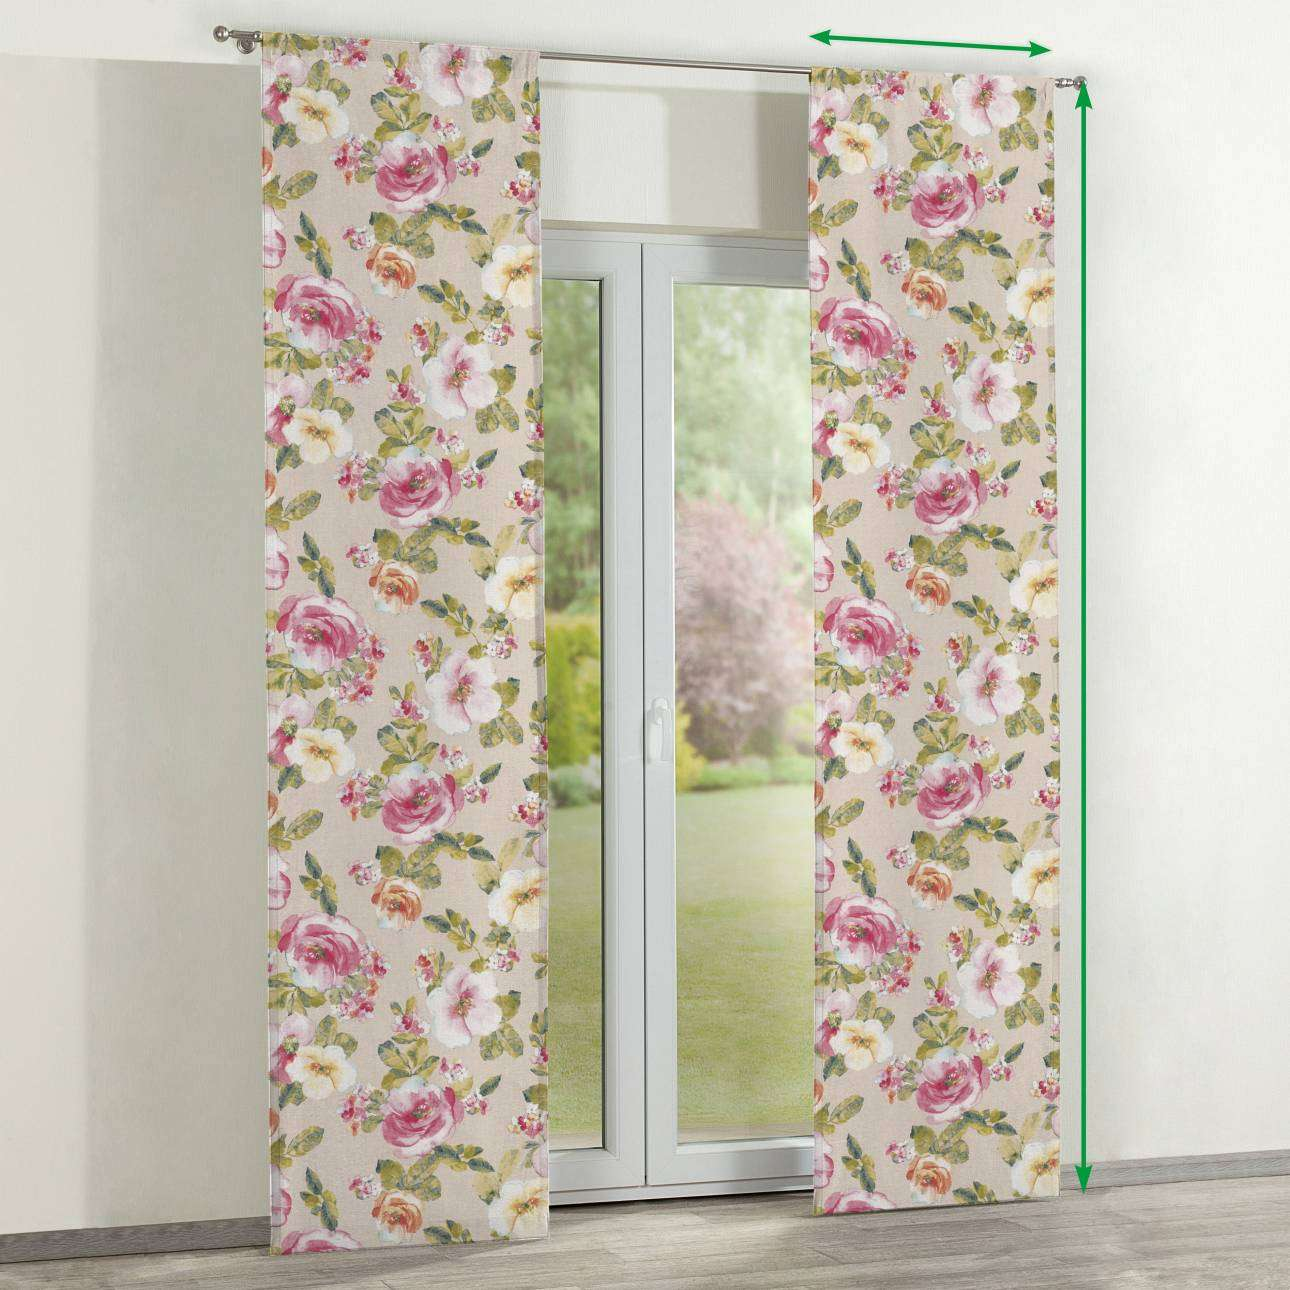 Slot panel curtains – Set of 2 in collection Londres, fabric: 140-43